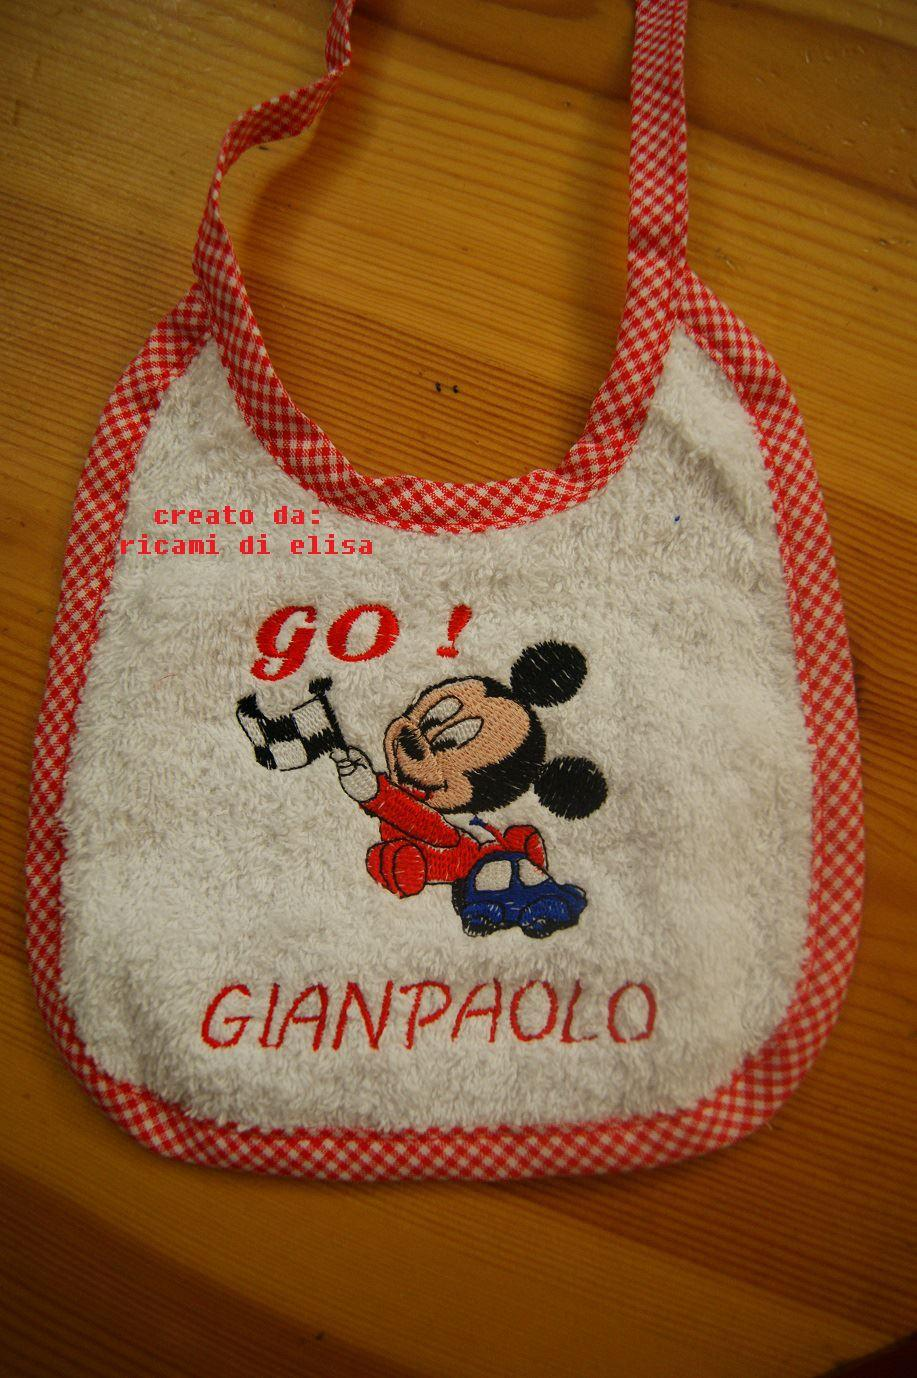 Baby bib with Mickey Mouse Racing embroidery design